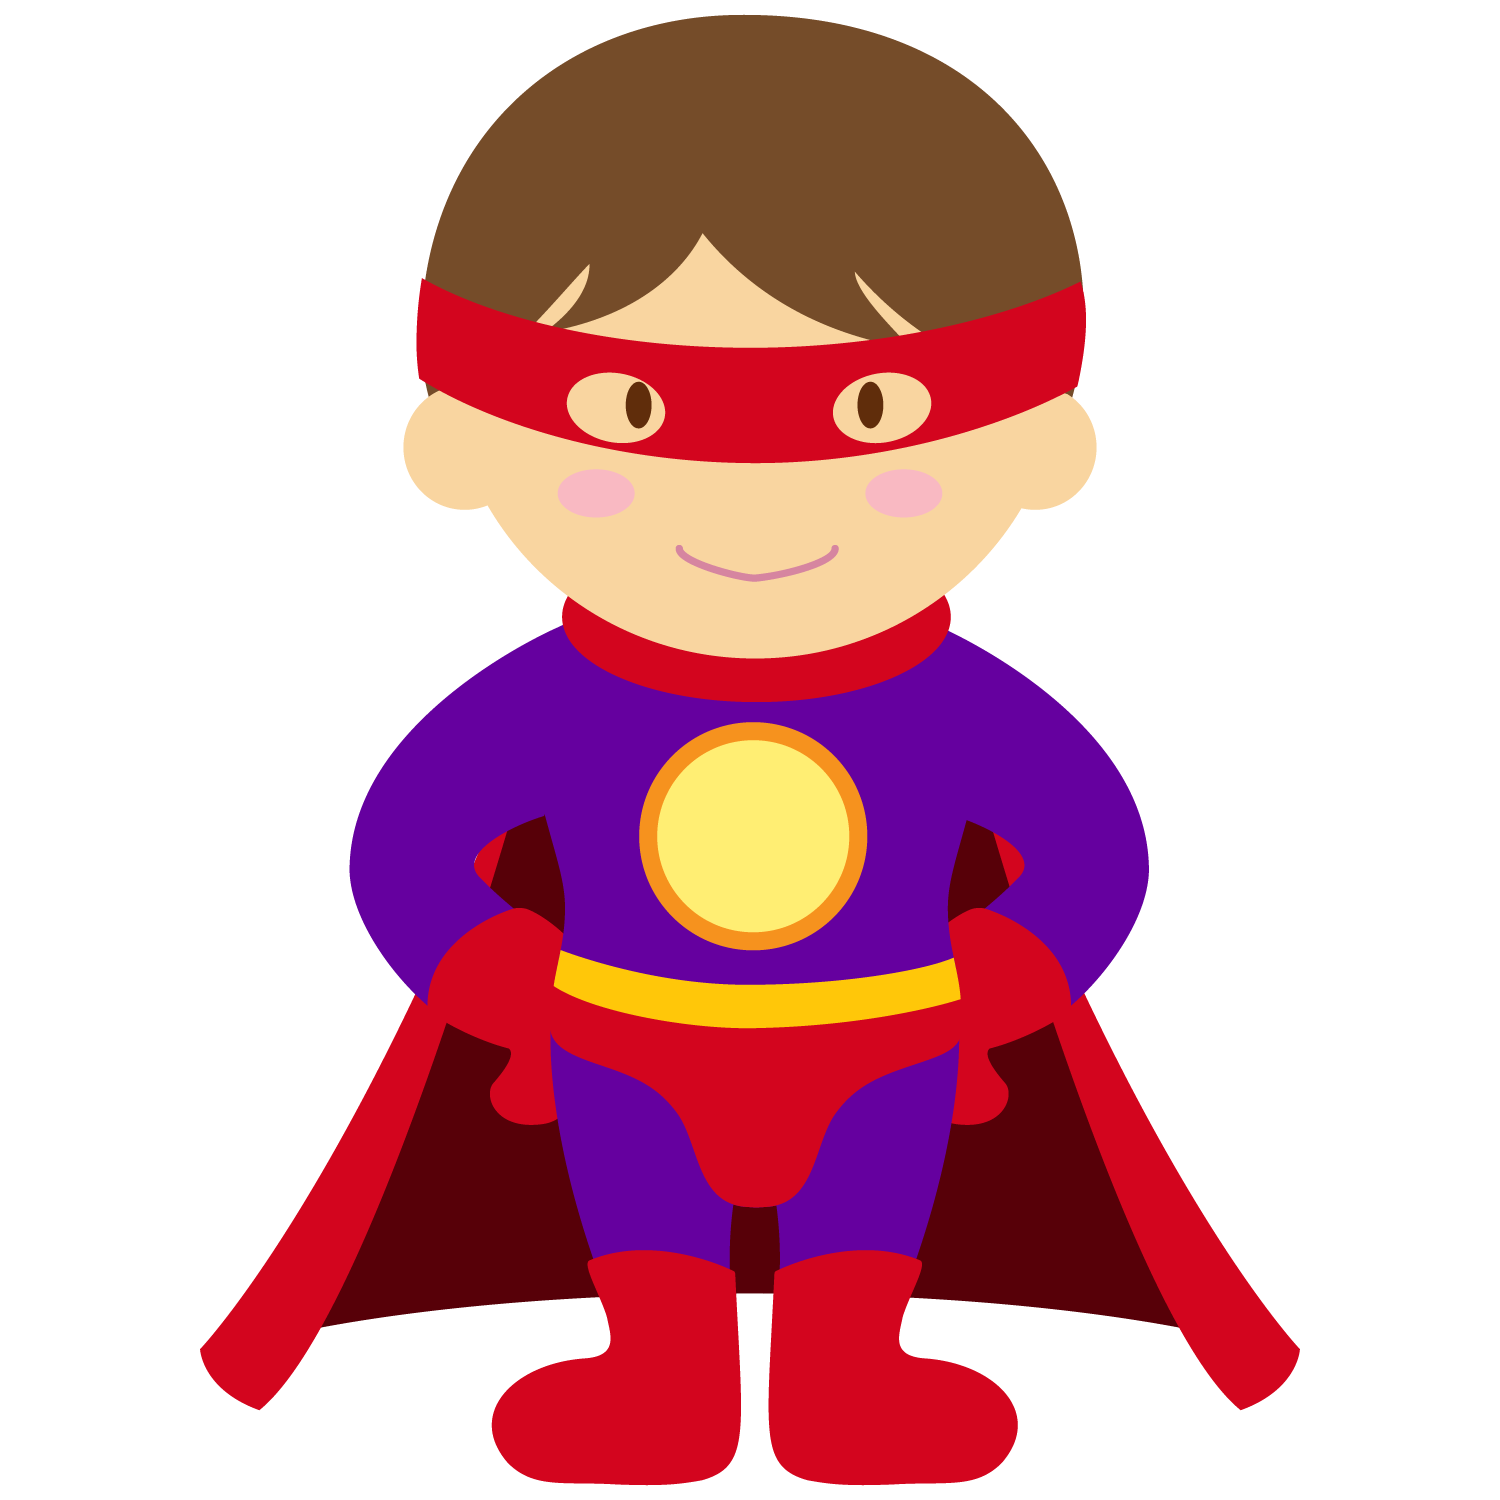 Super hero kids clipart graphic free library Kids dressed as Superheroes Clipart. - Oh My Fiesta! for Geeks graphic free library